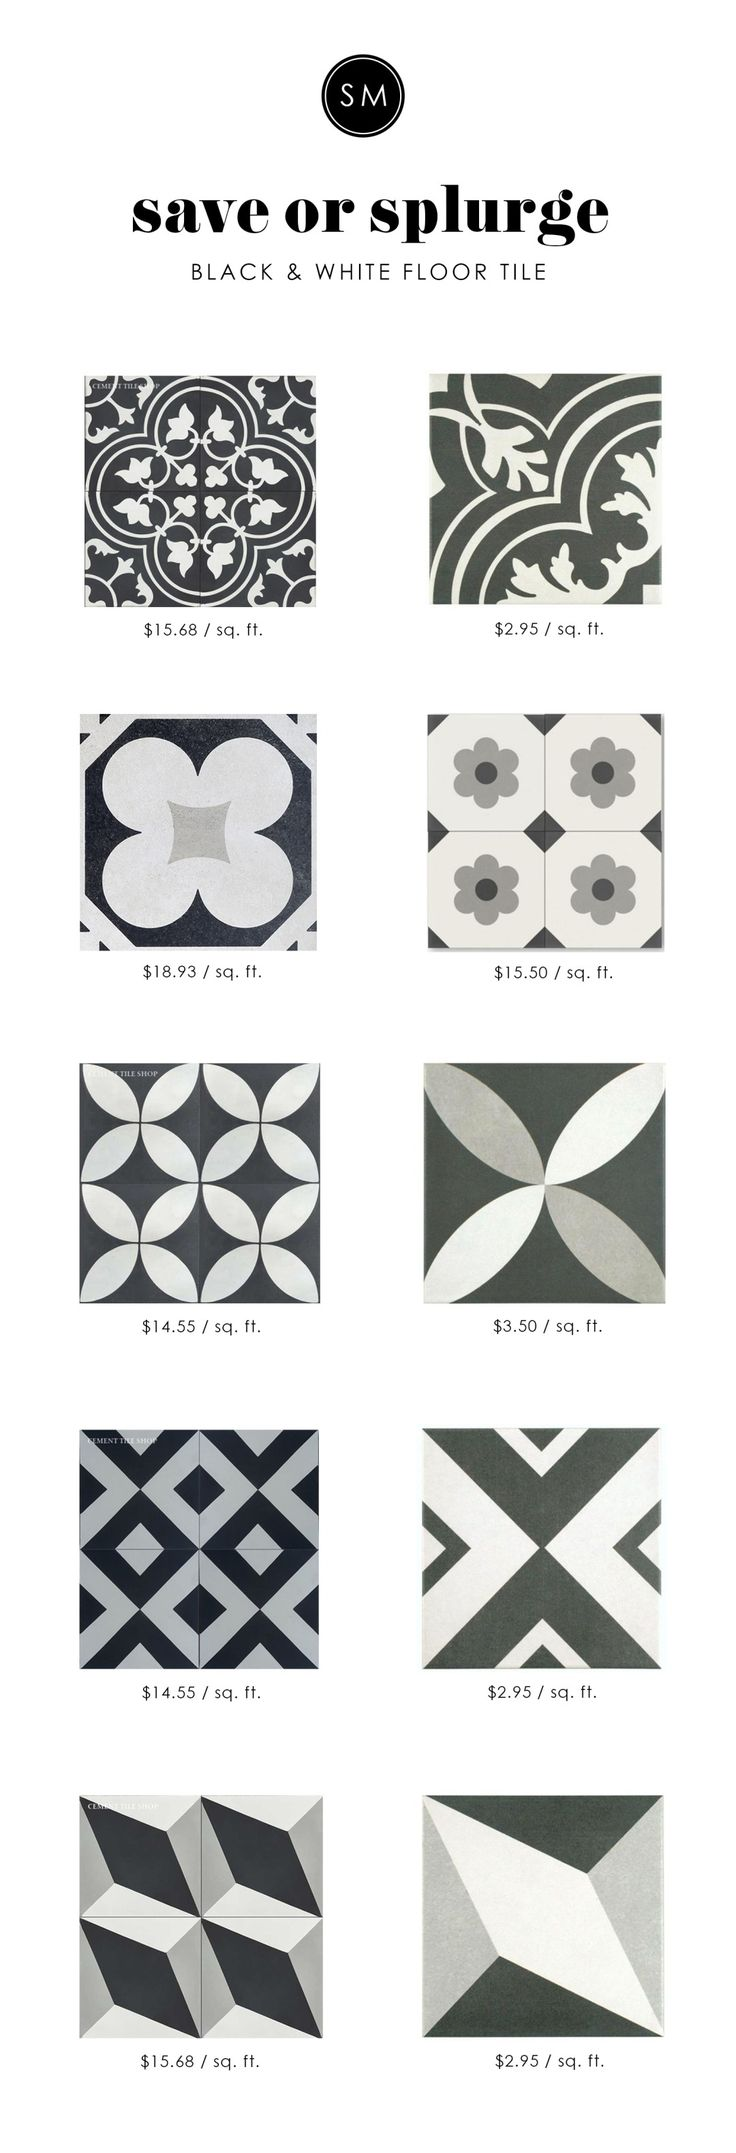 Best 25 black and white tiles ideas on pinterest black and save or splurge black white floor tile dailygadgetfo Gallery